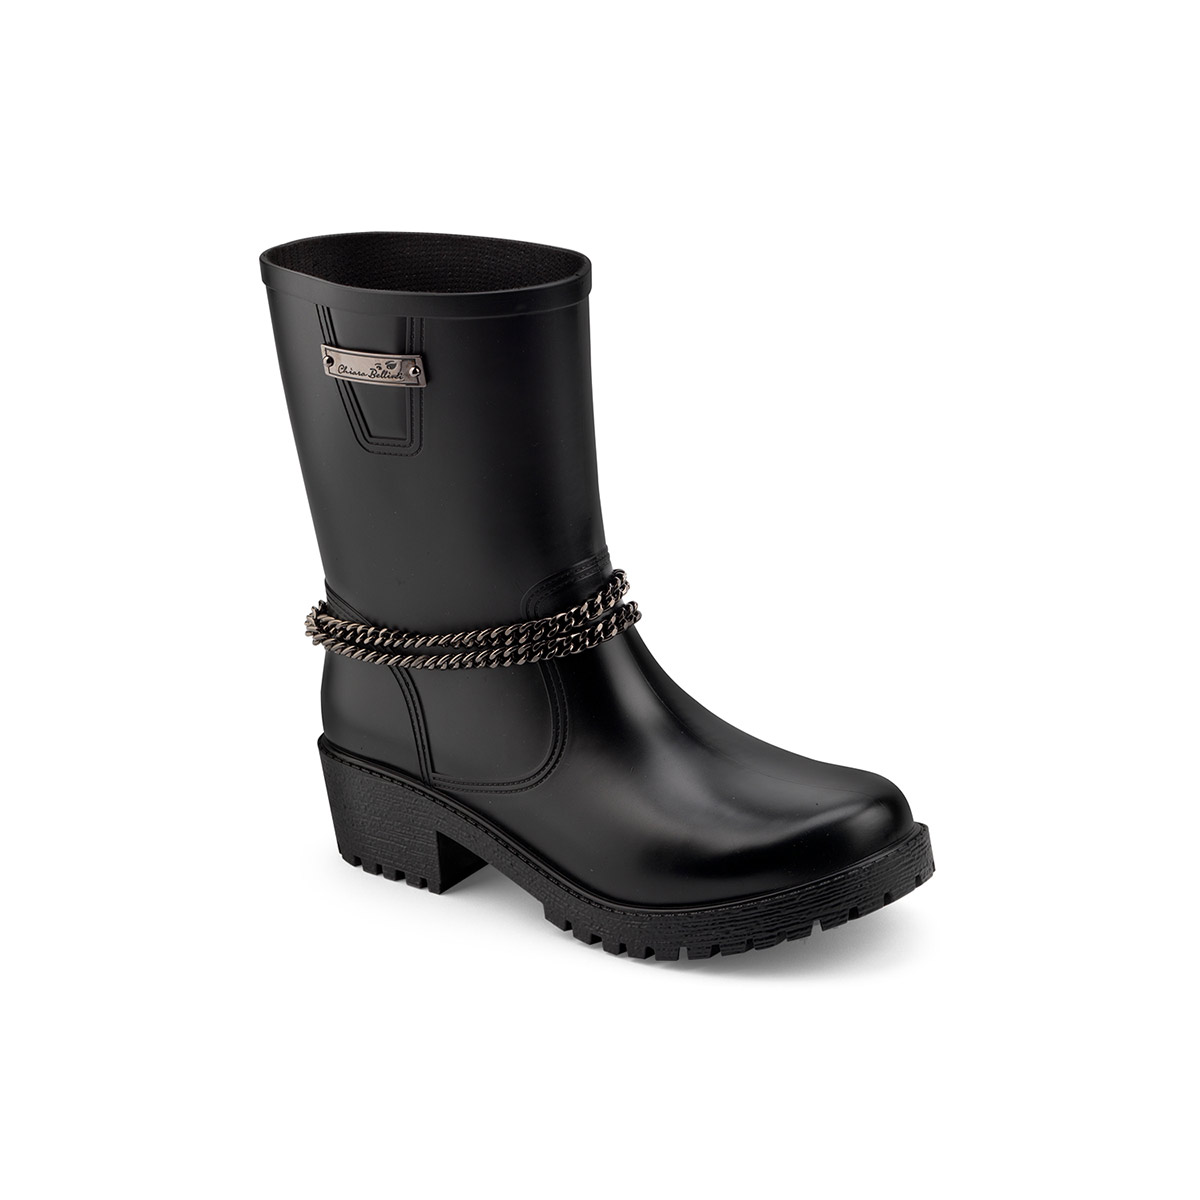 Stivaletto biker in pvc con catena